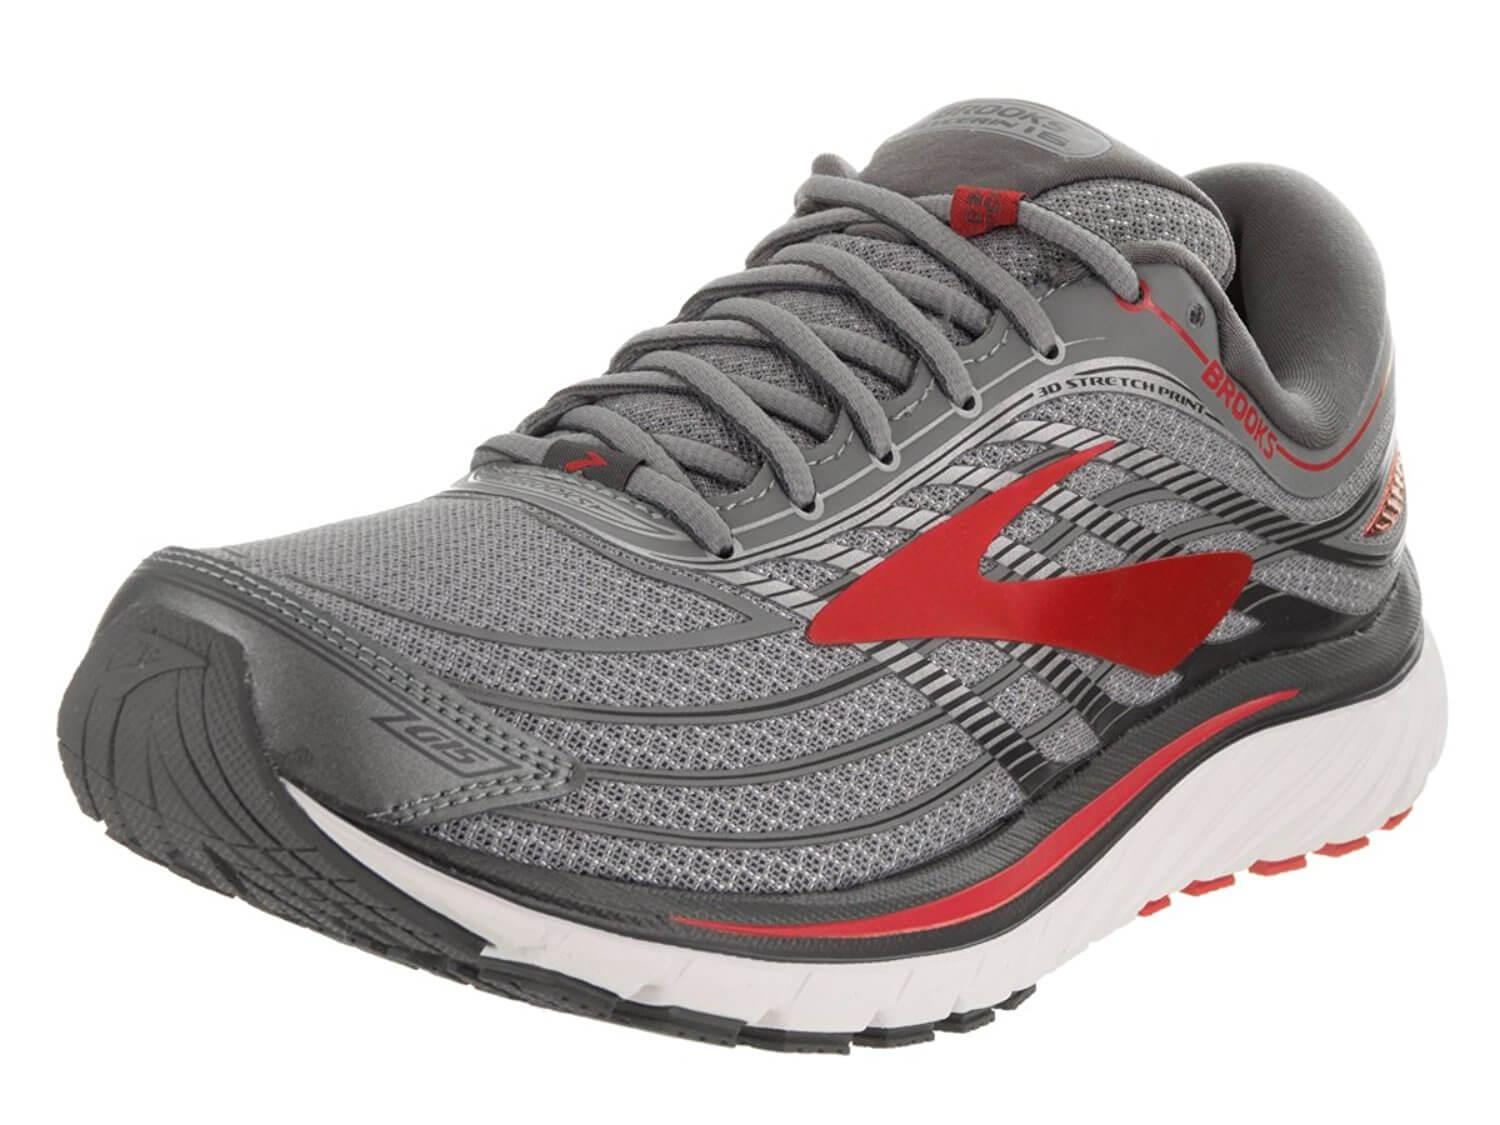 bef430f9305 Brooks Glycerin 15 Fullyed - To Buy or Not in May 2019